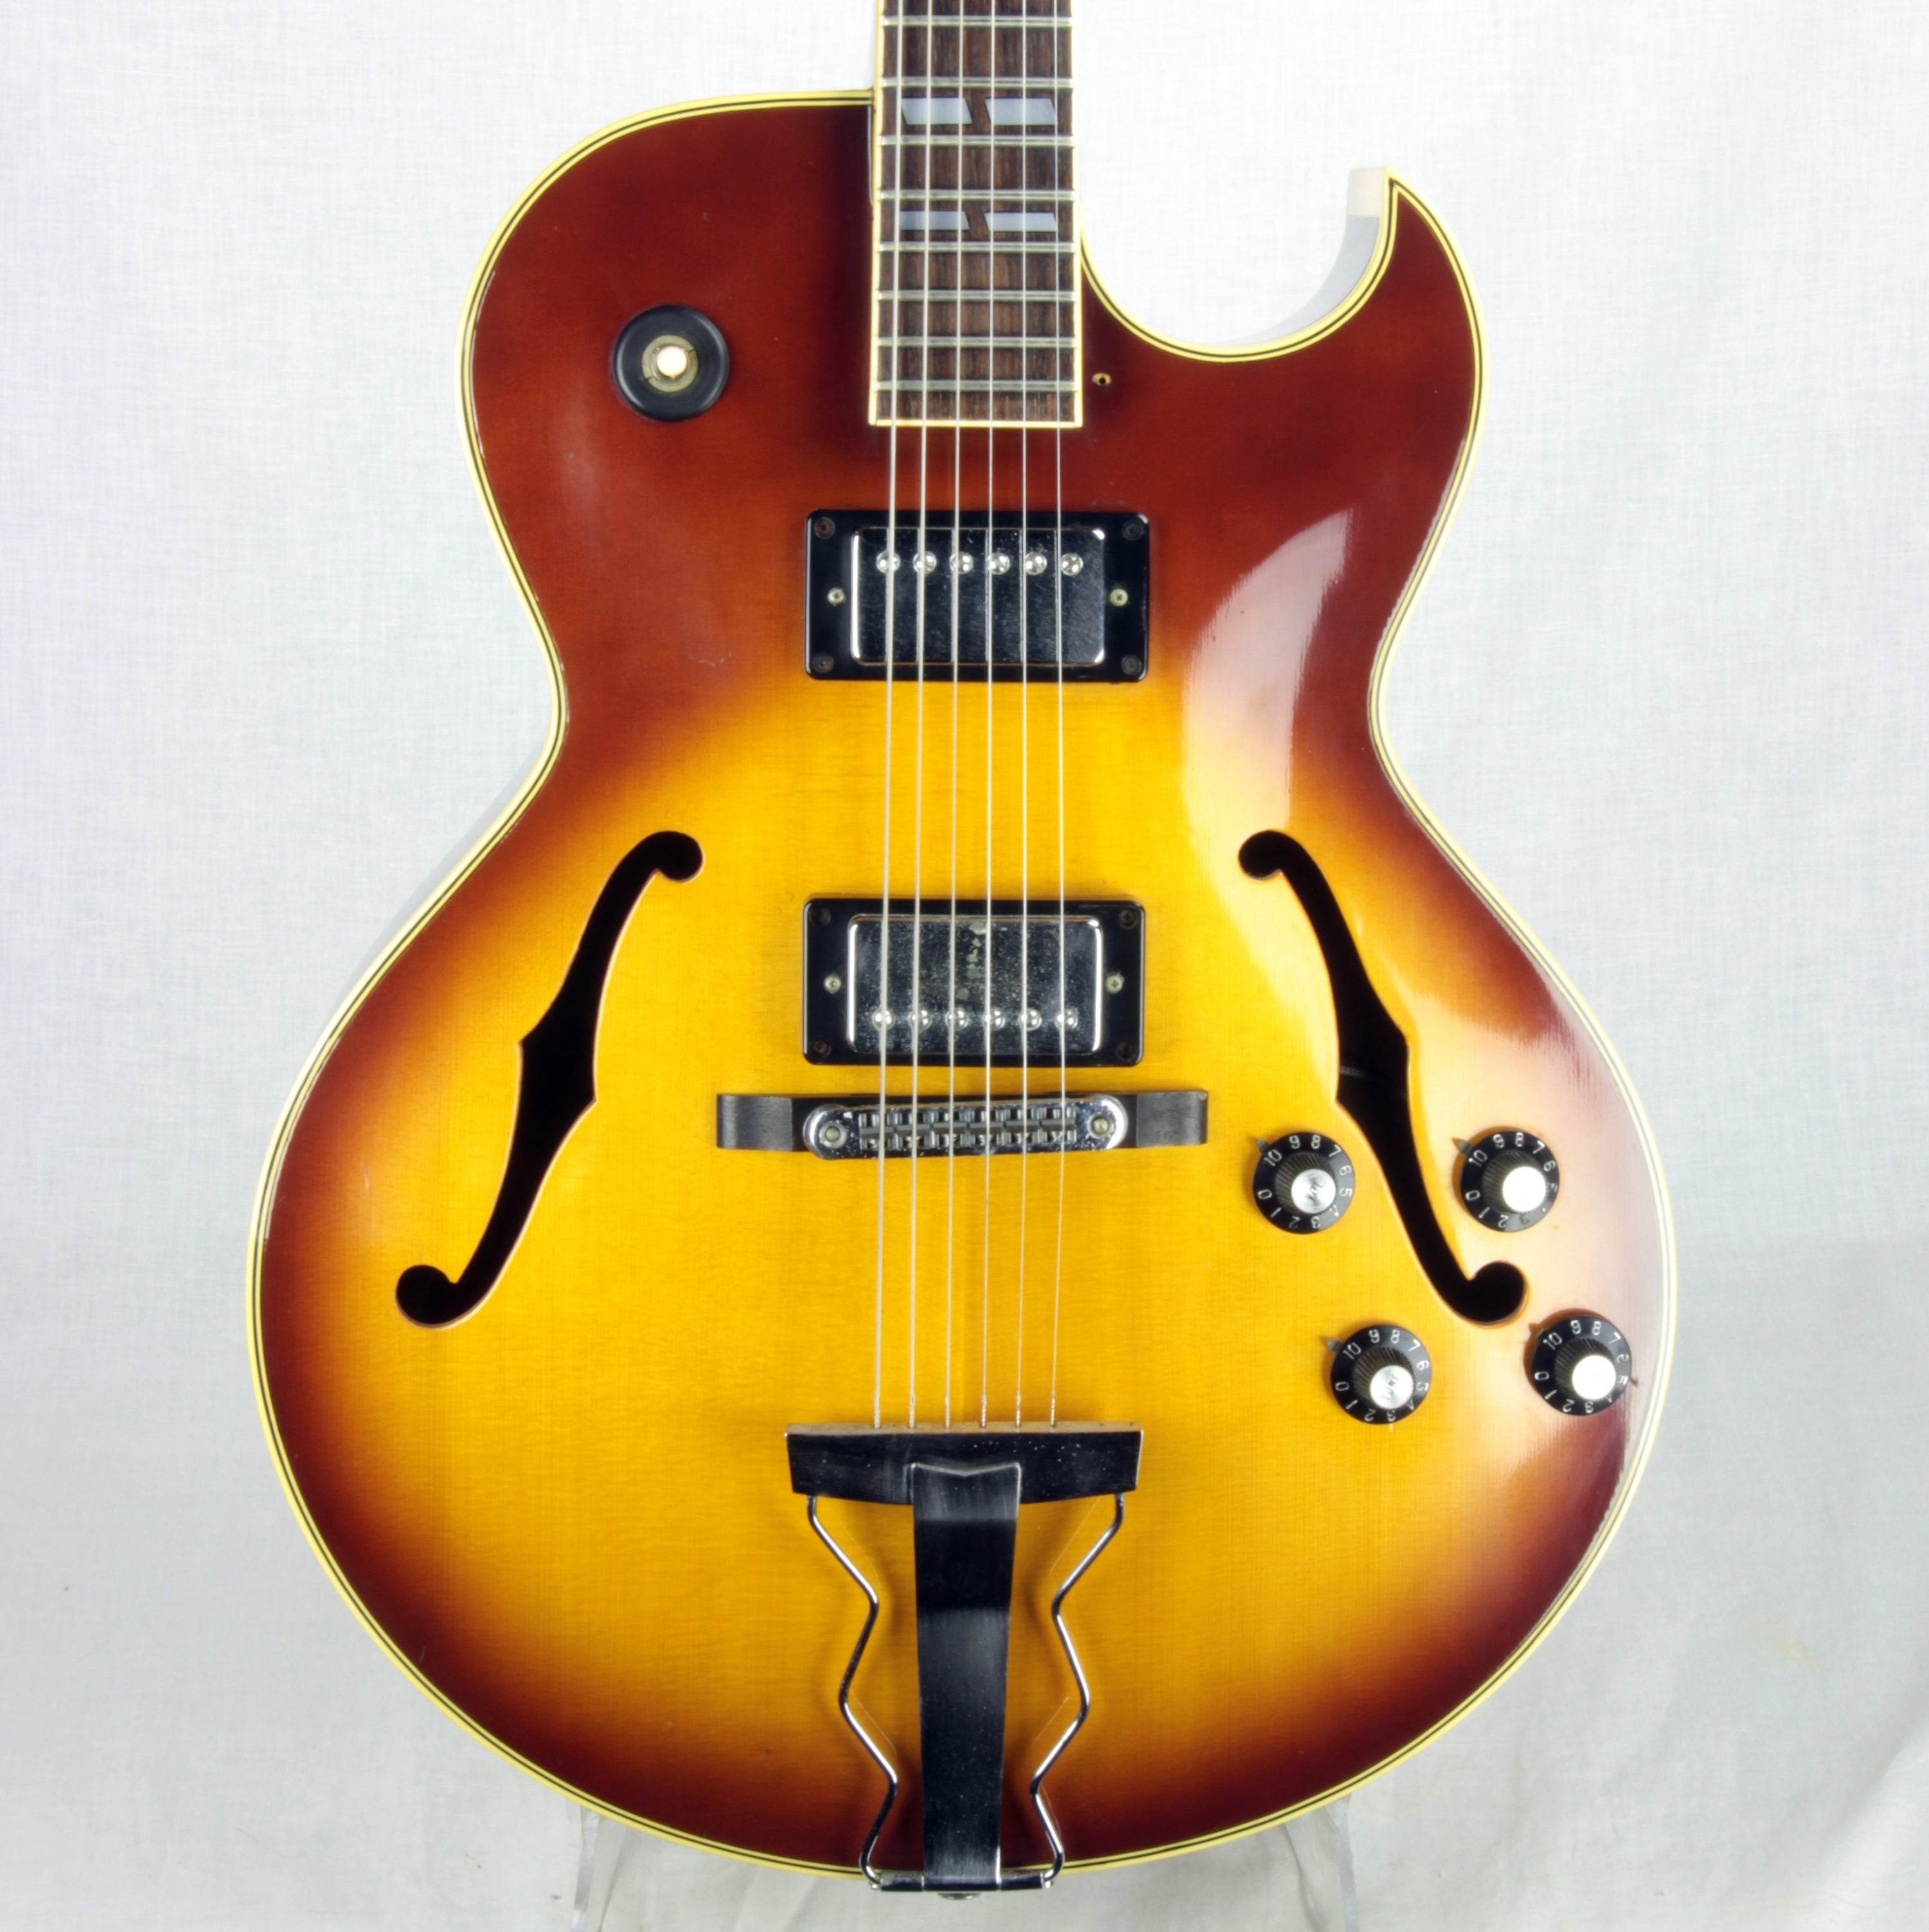 1977 Ibanez 2355 SIGNED M. Sugihara Label Vintage Made in Japan Archtop ES-175 Lawsuit